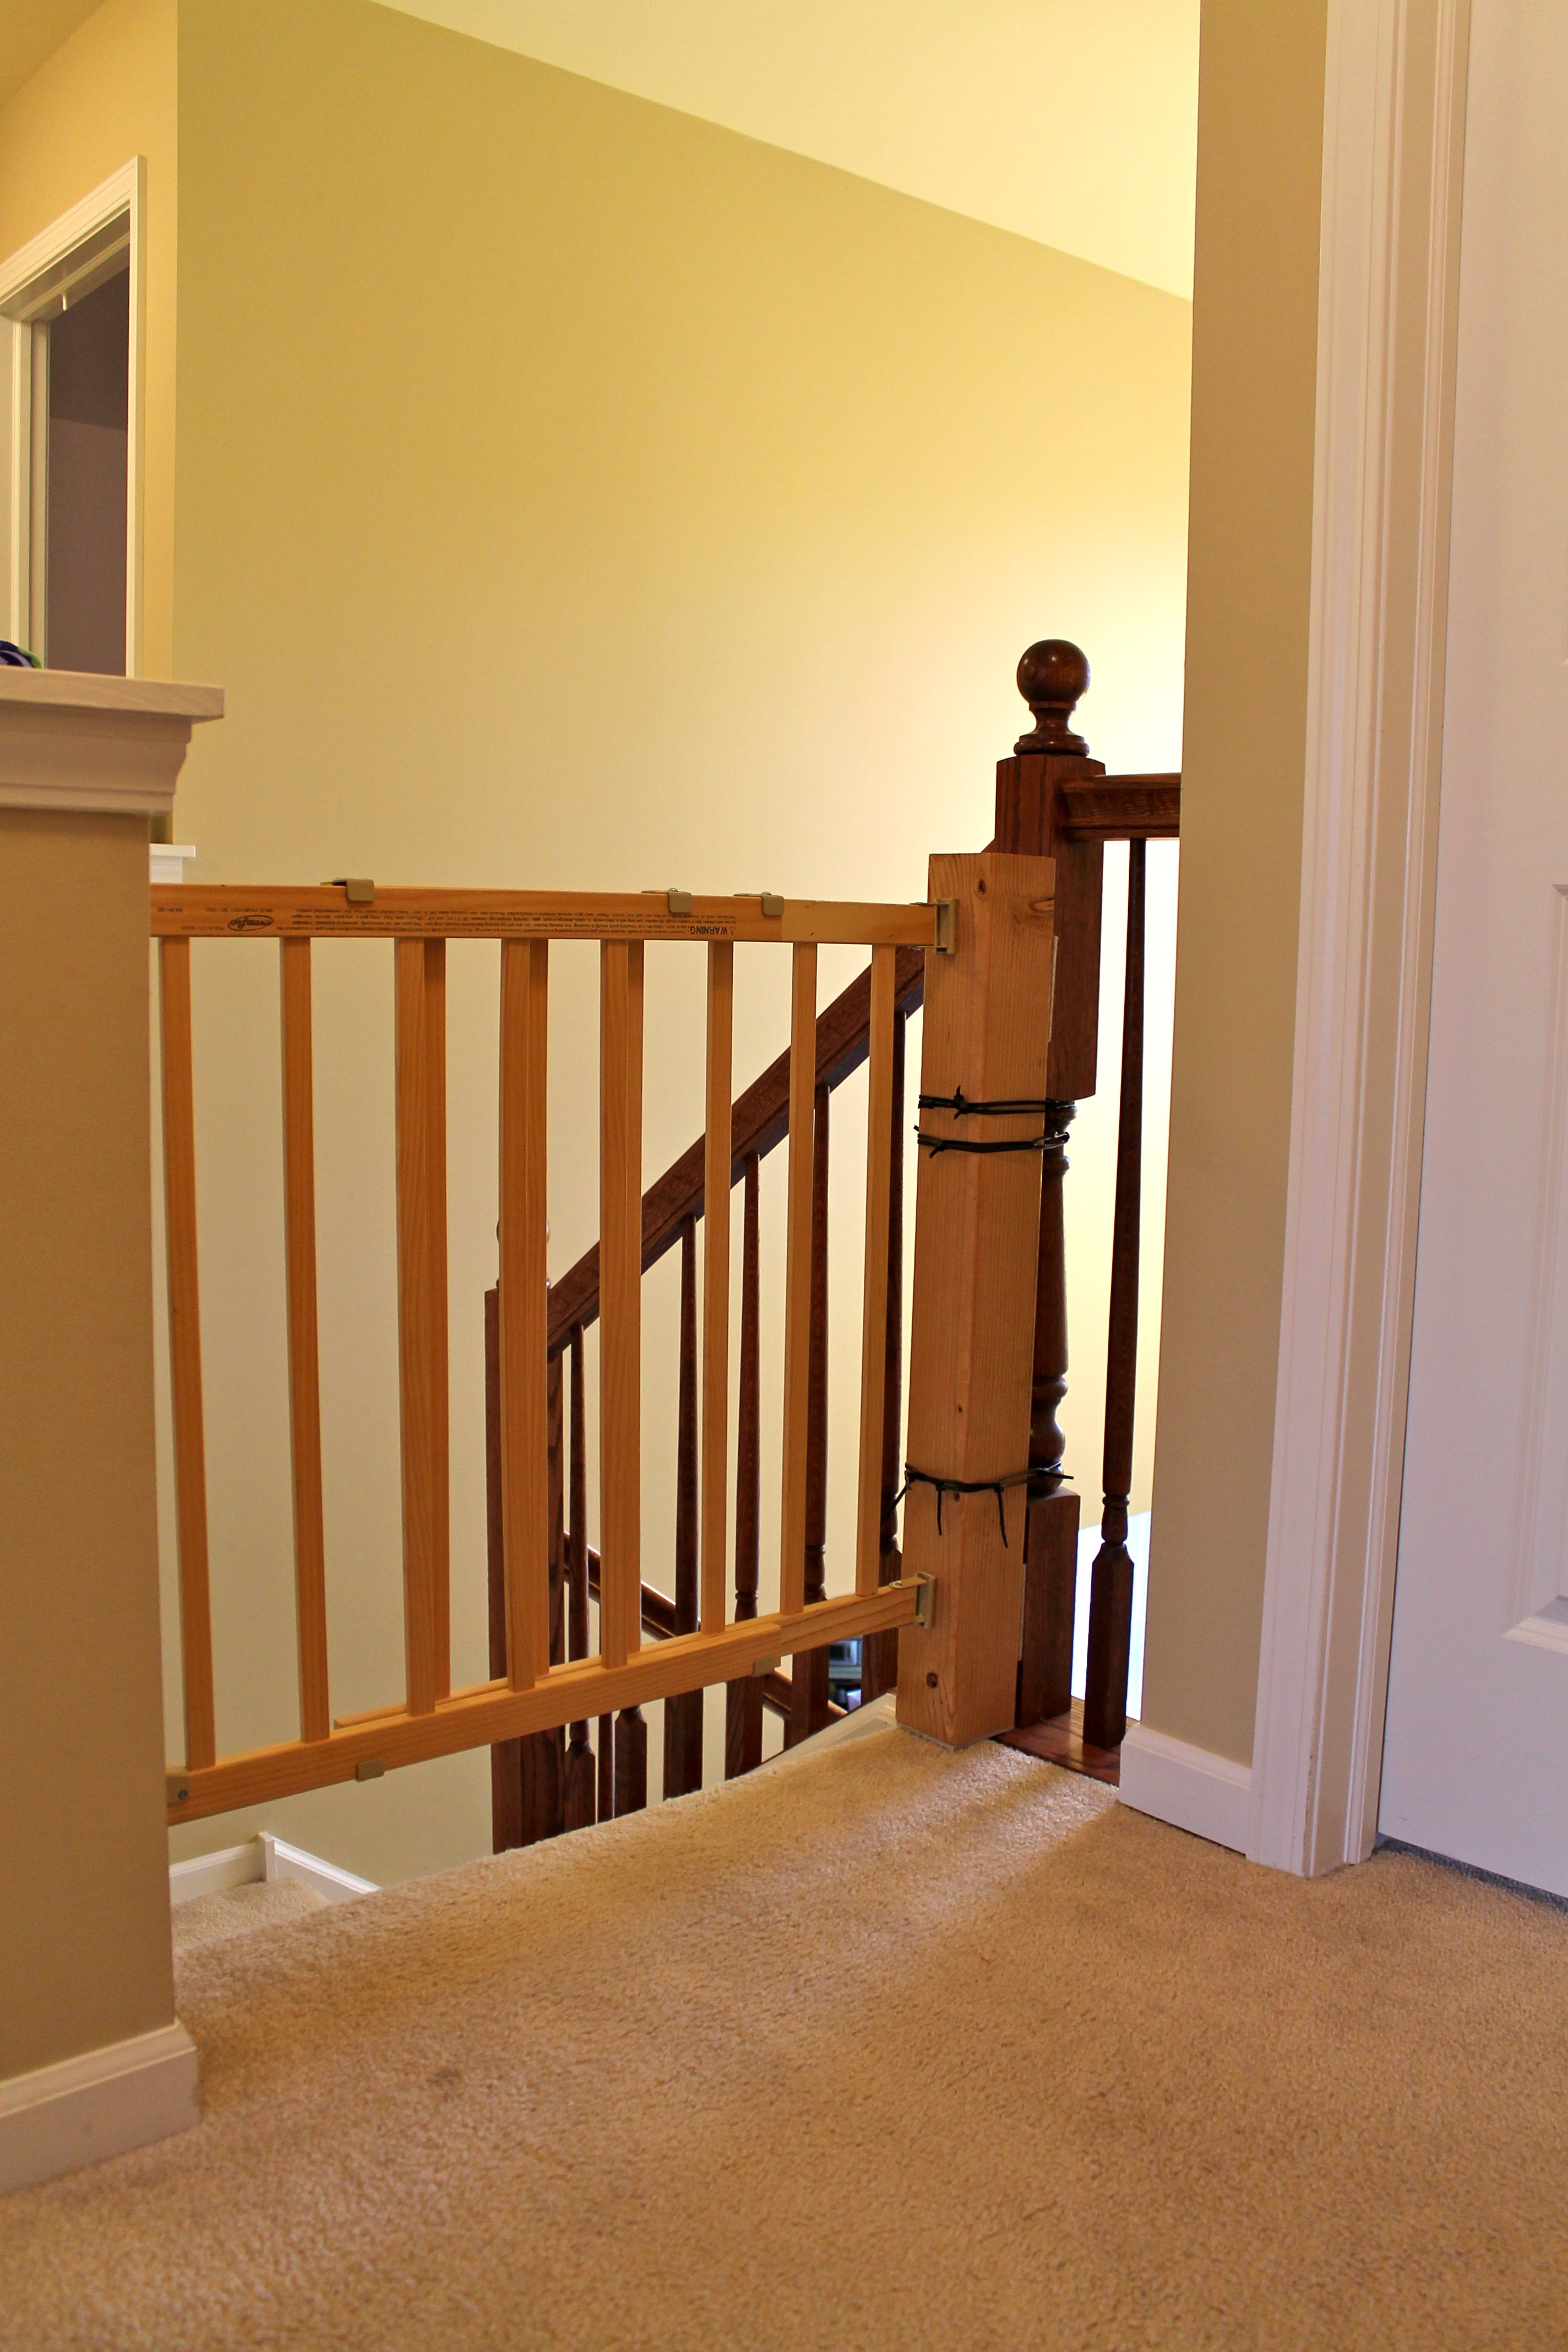 Safety Stair Gate Bring Mae Flowers Stairs Stair Gate Safety Gates For Stairs